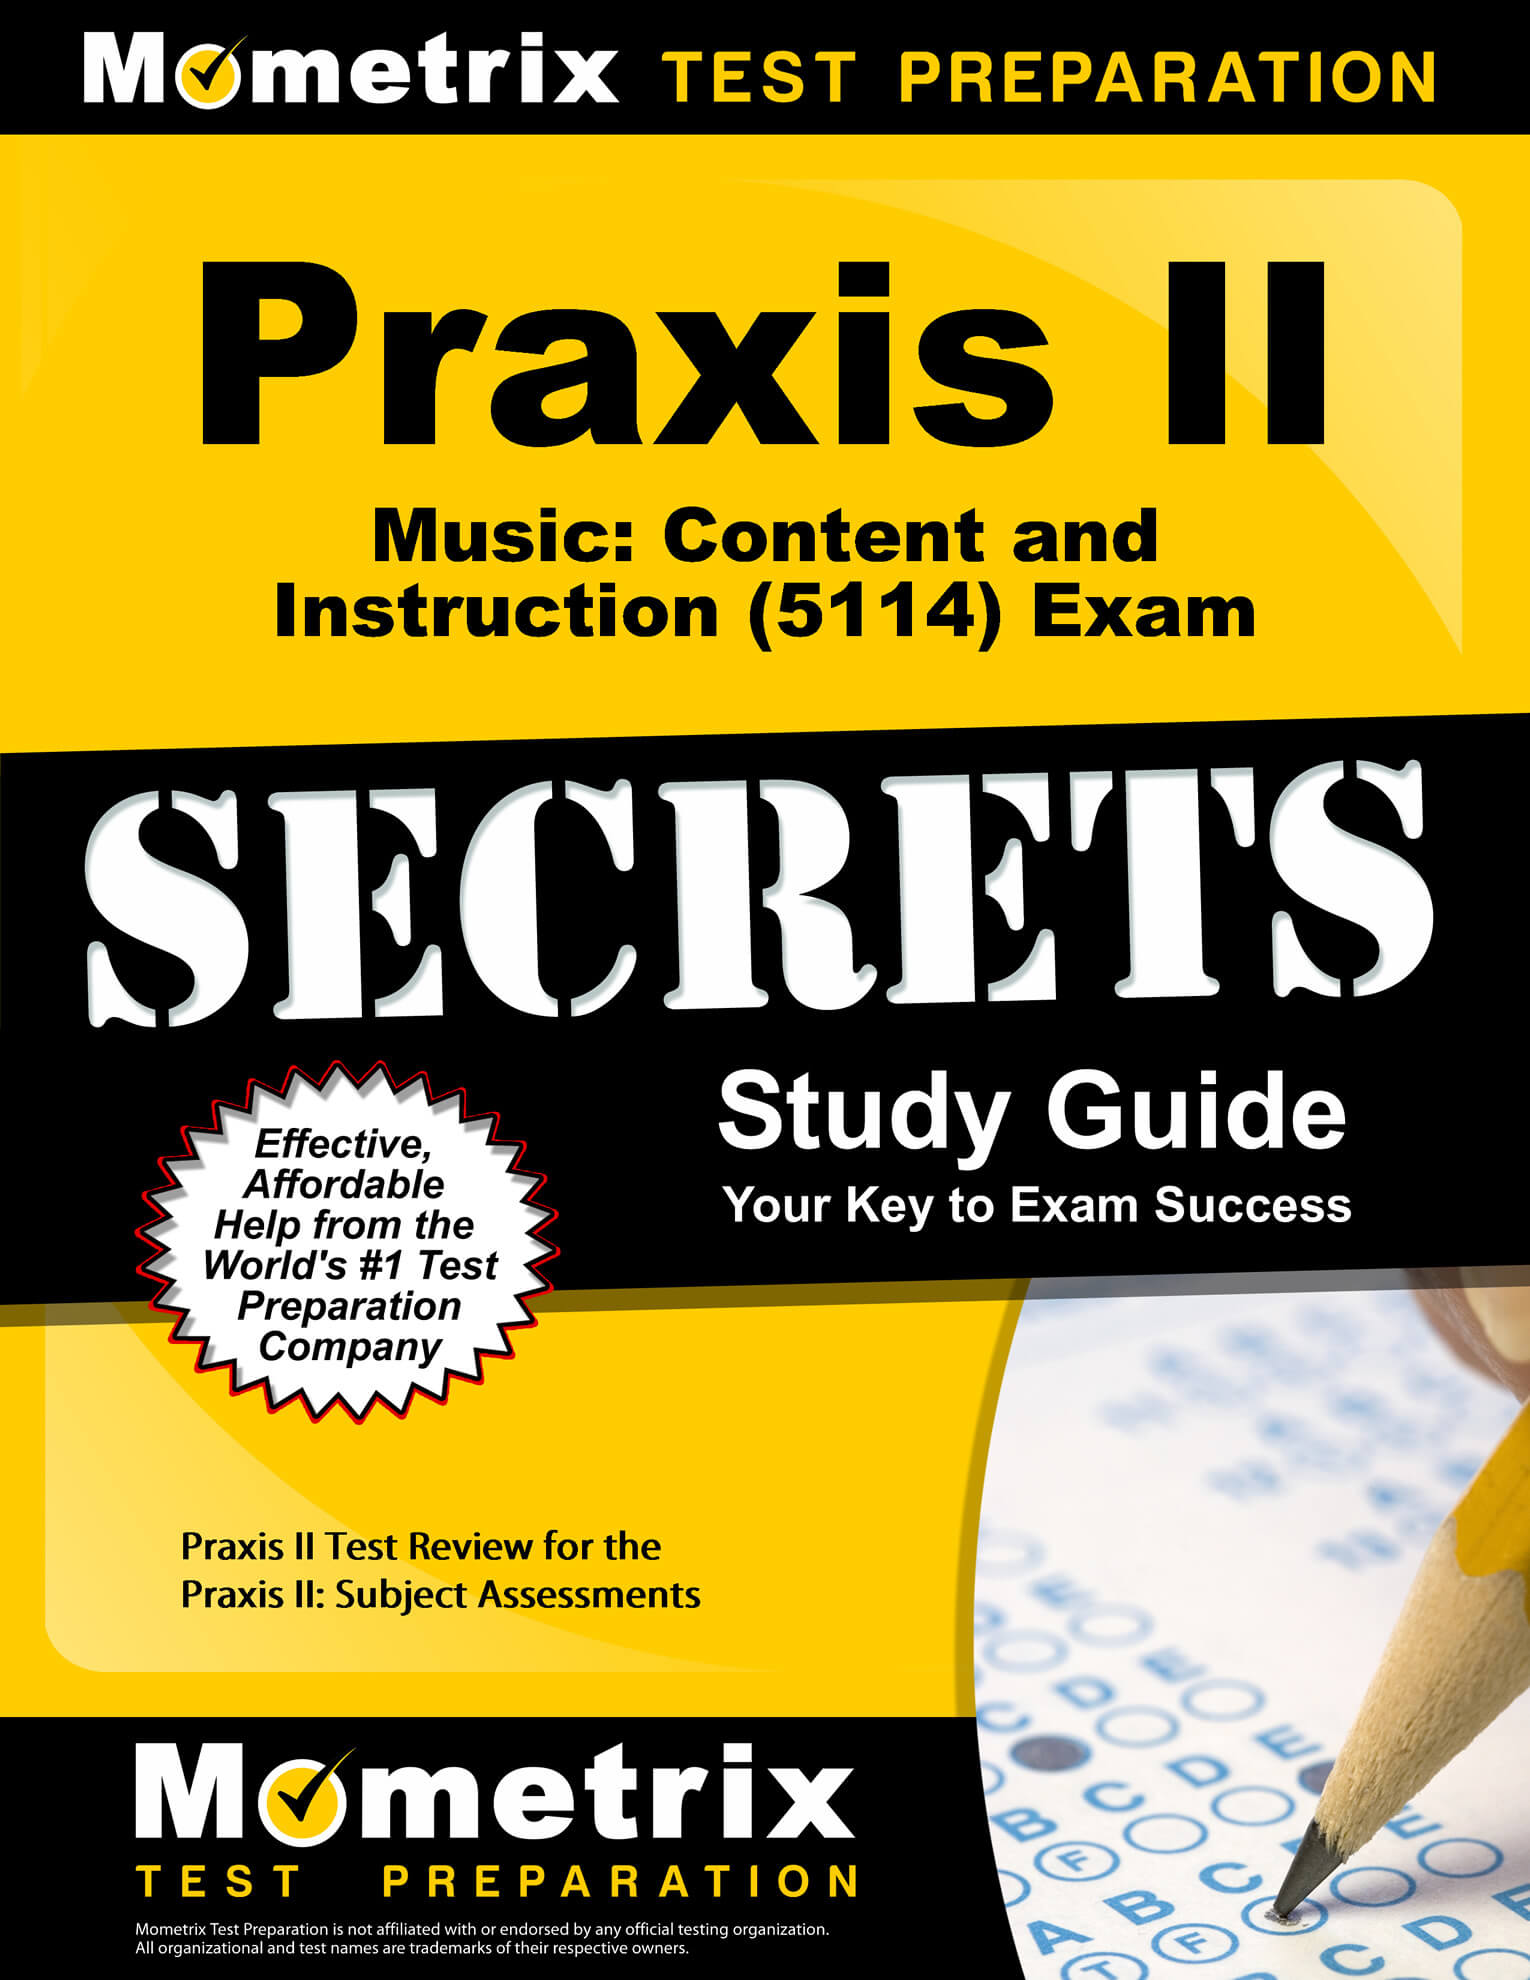 Praxis II Music: Content and Instruction Study Guide